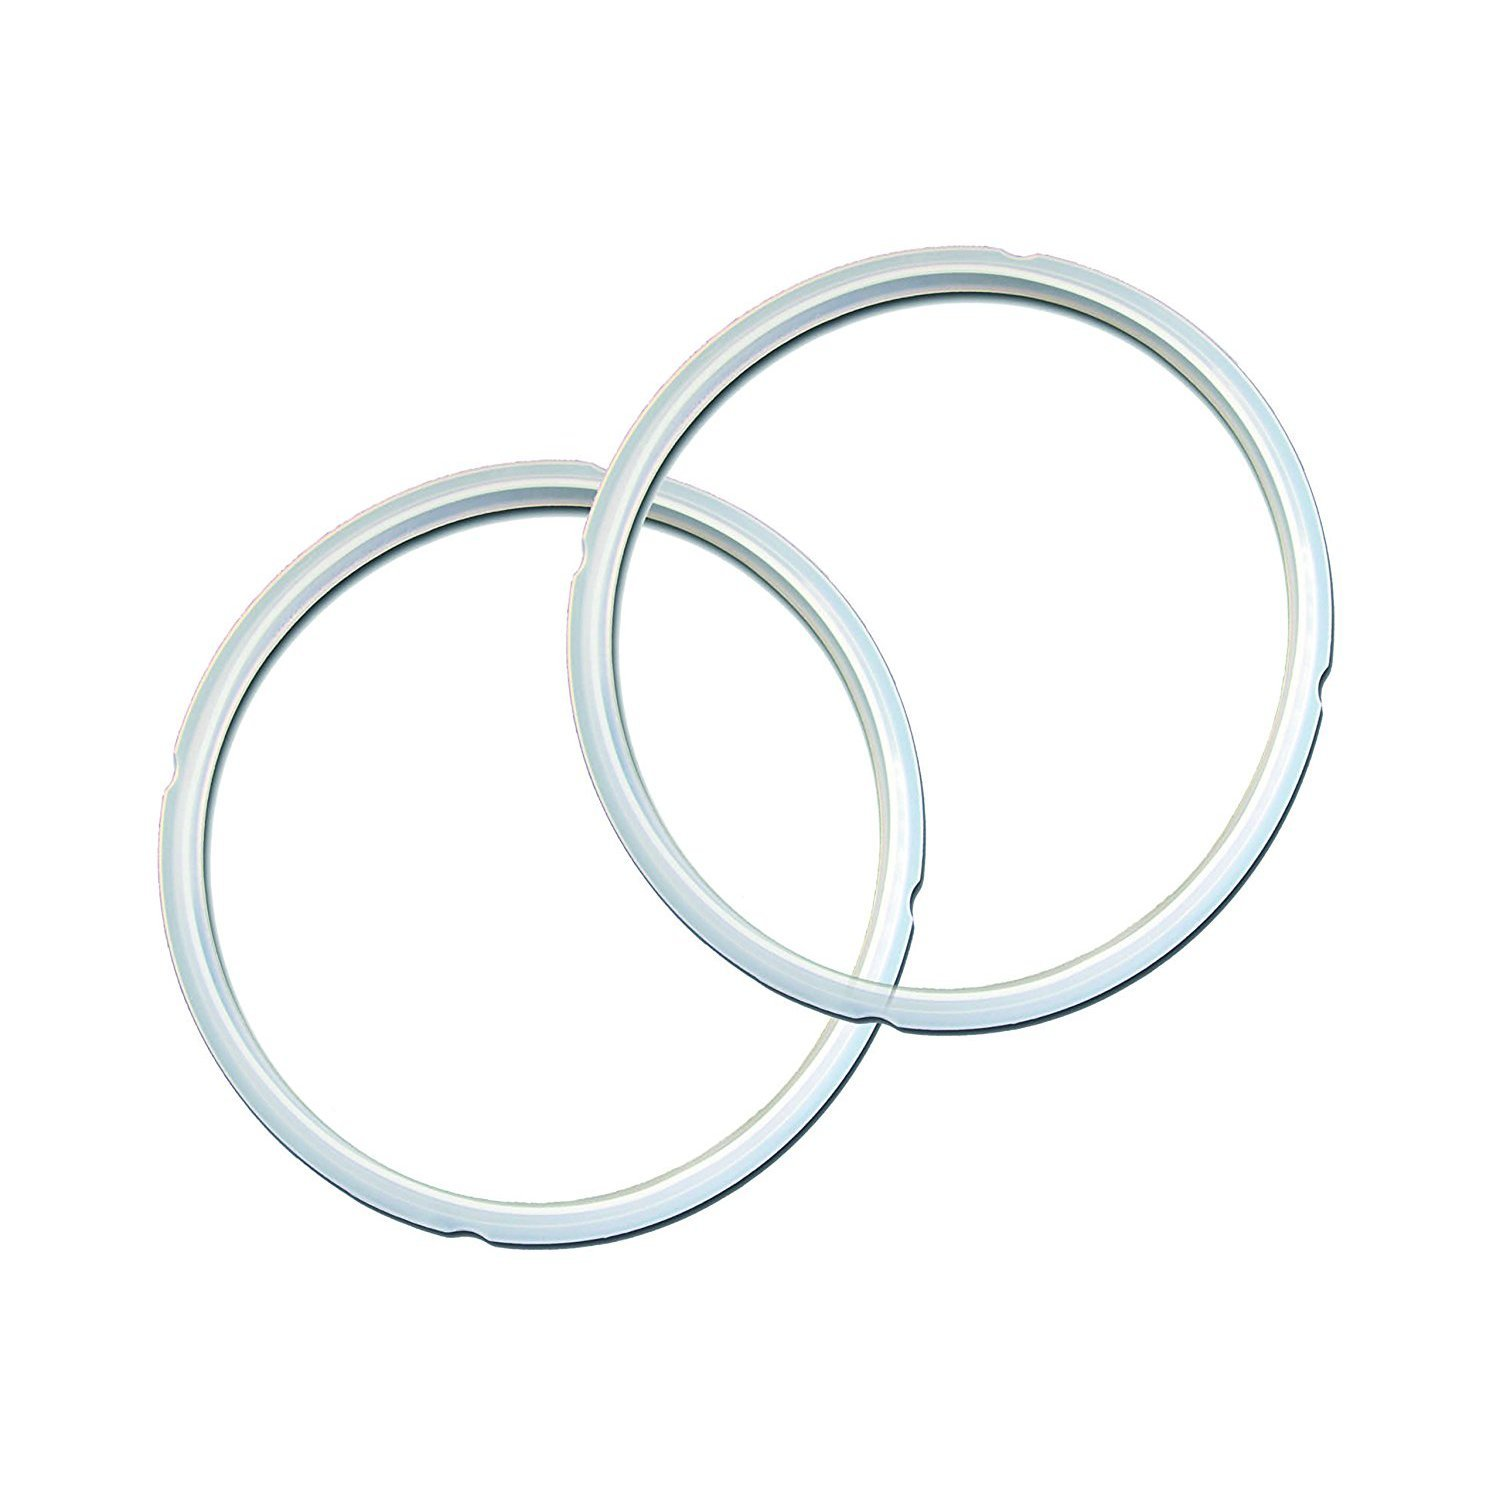 Genuine Instant Pot Sealing Rings 2-Pack - Mini 3 Quart Red/Blue RING-3-BLUE-RED-2